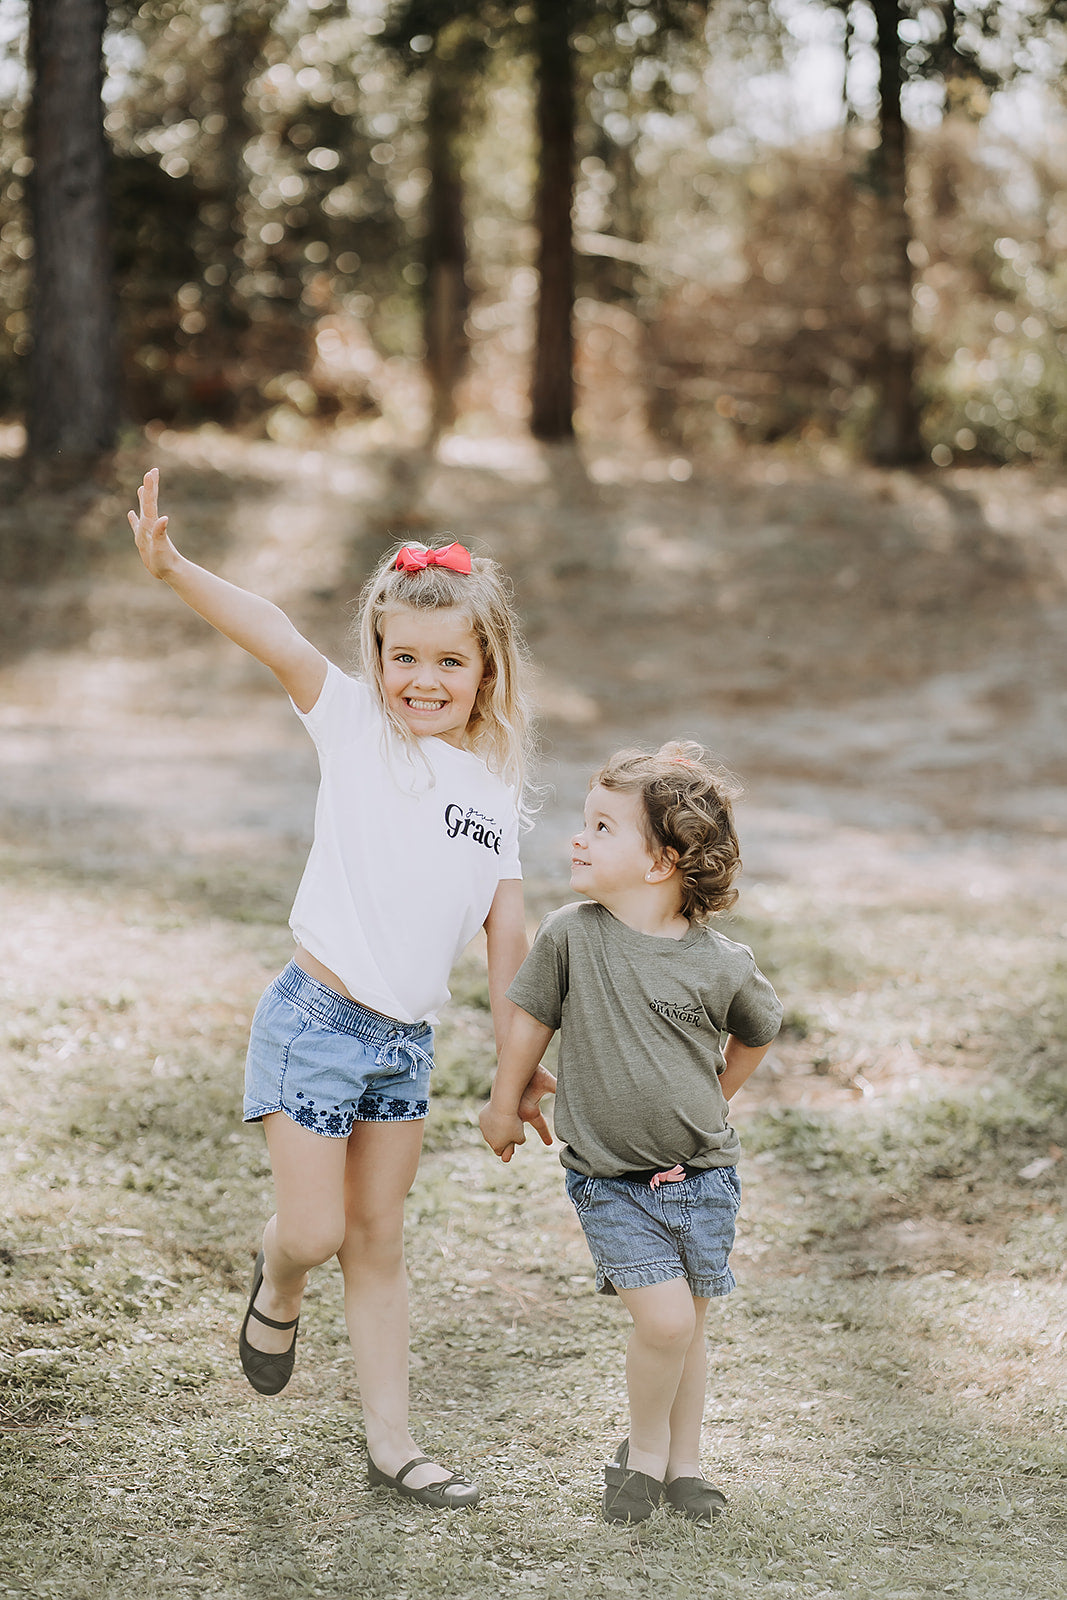 Give Grace - Toddler Pocket Style Tee